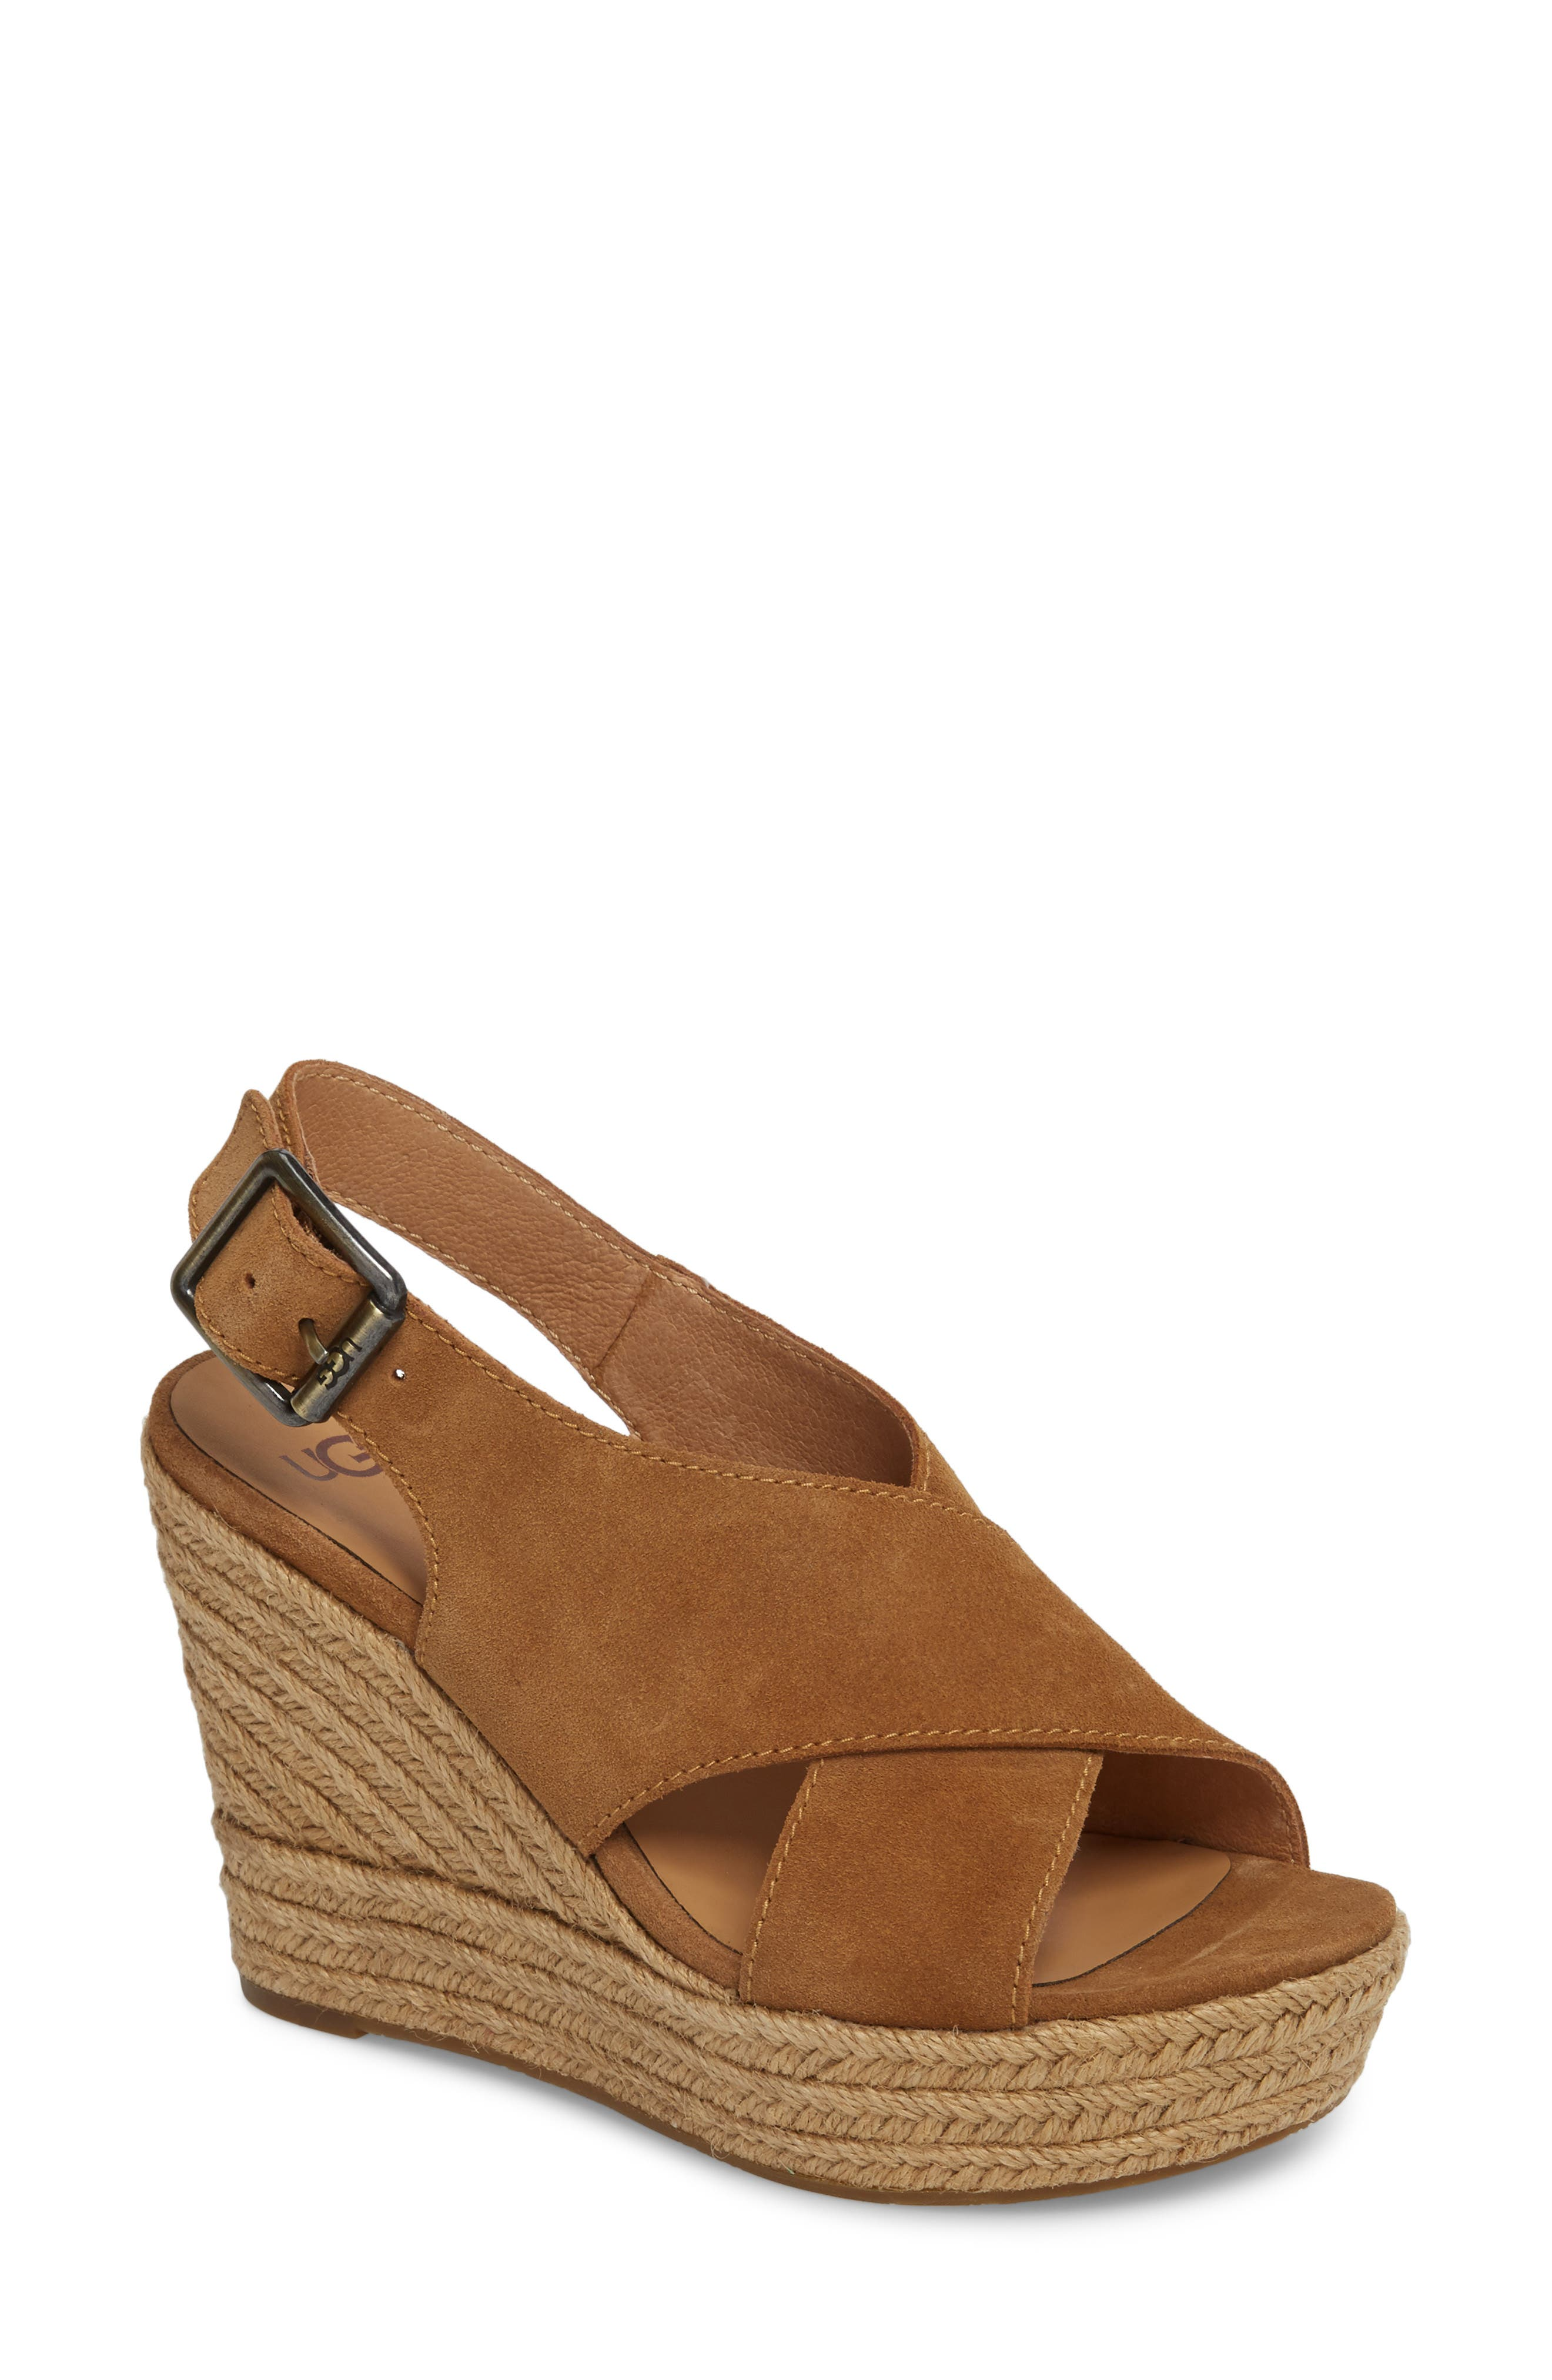 Harlow Platform Wedge Sandal,                             Main thumbnail 1, color,                             Chestnut Suede